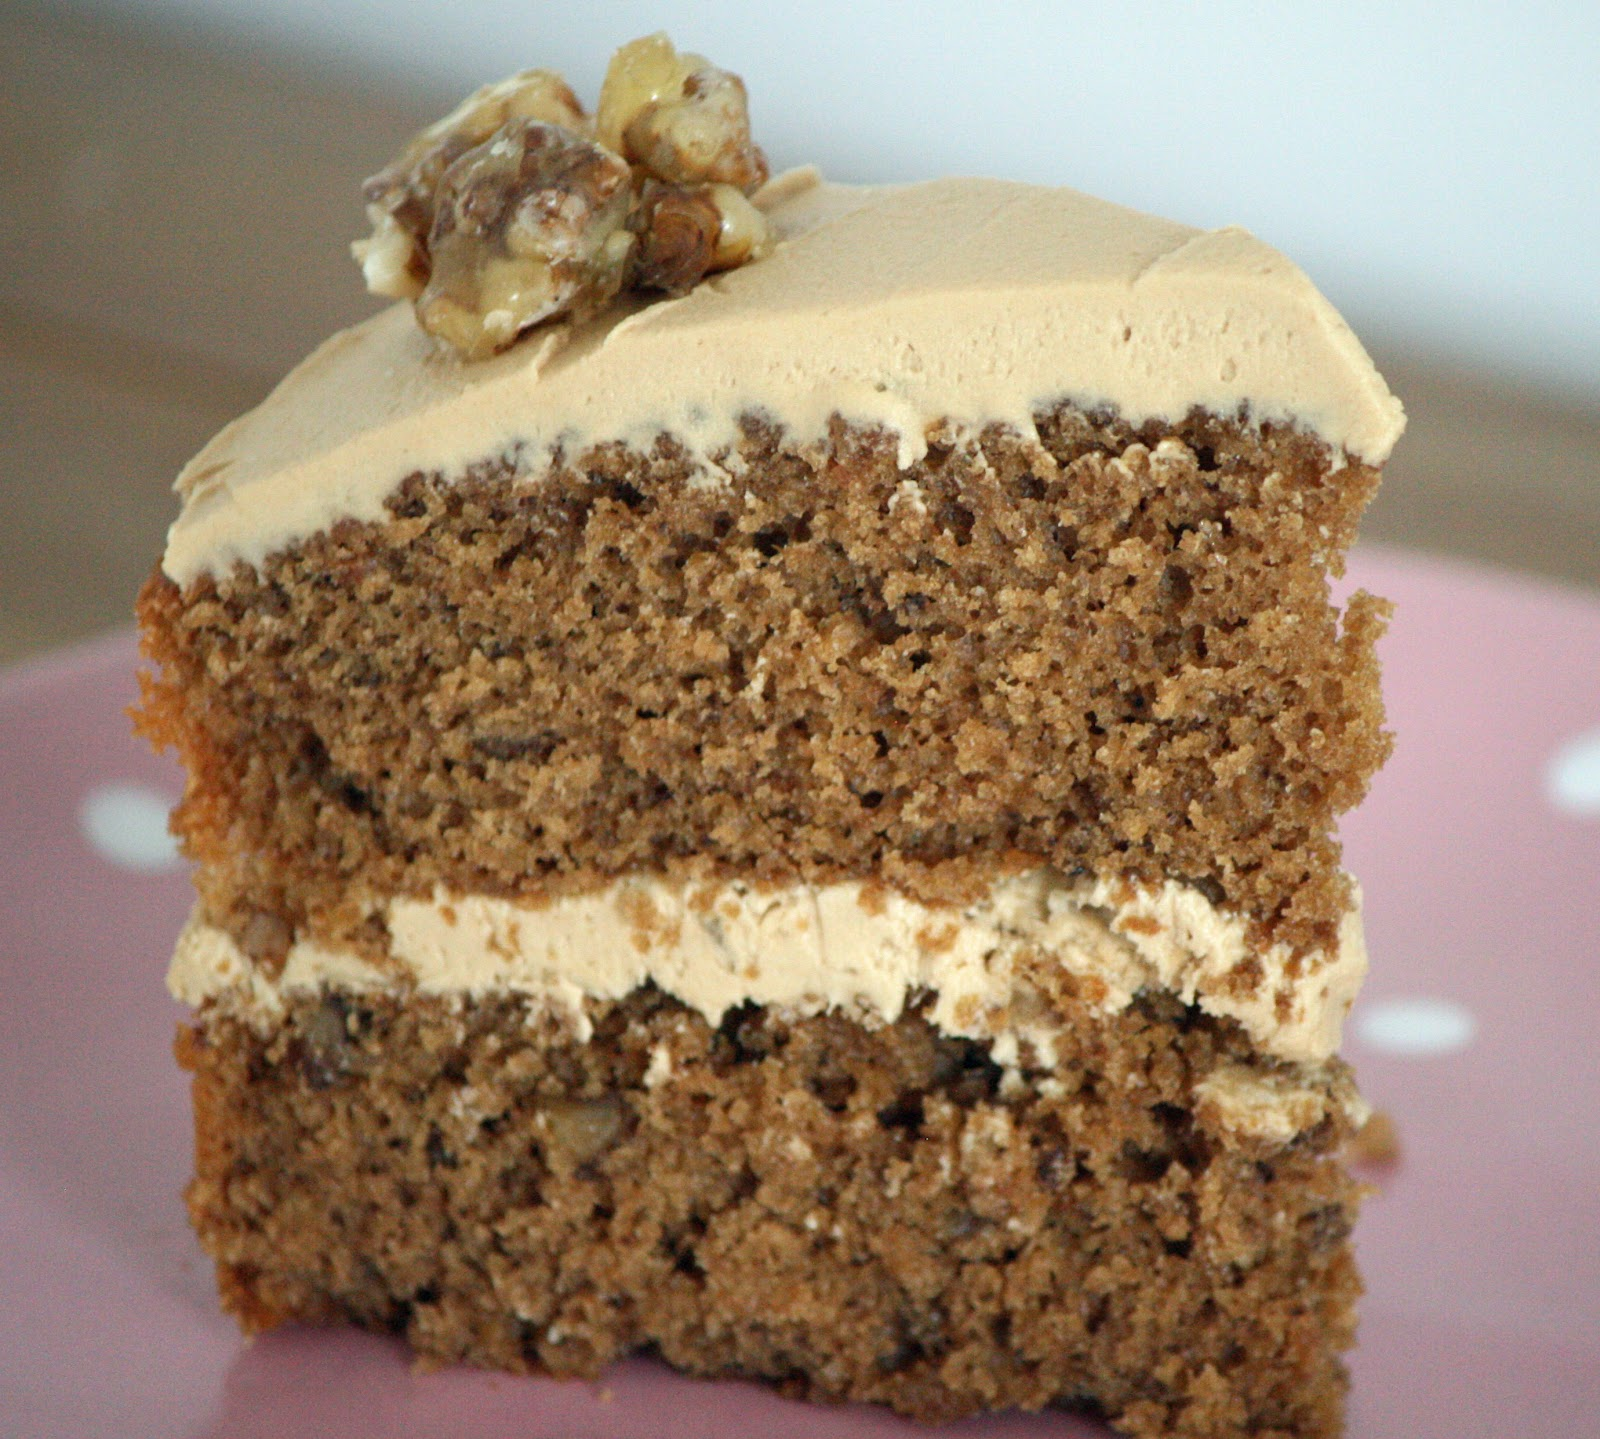 Lauralovescakes...: Weekly Bake-Off: Hokey Pokey Coffee Cake